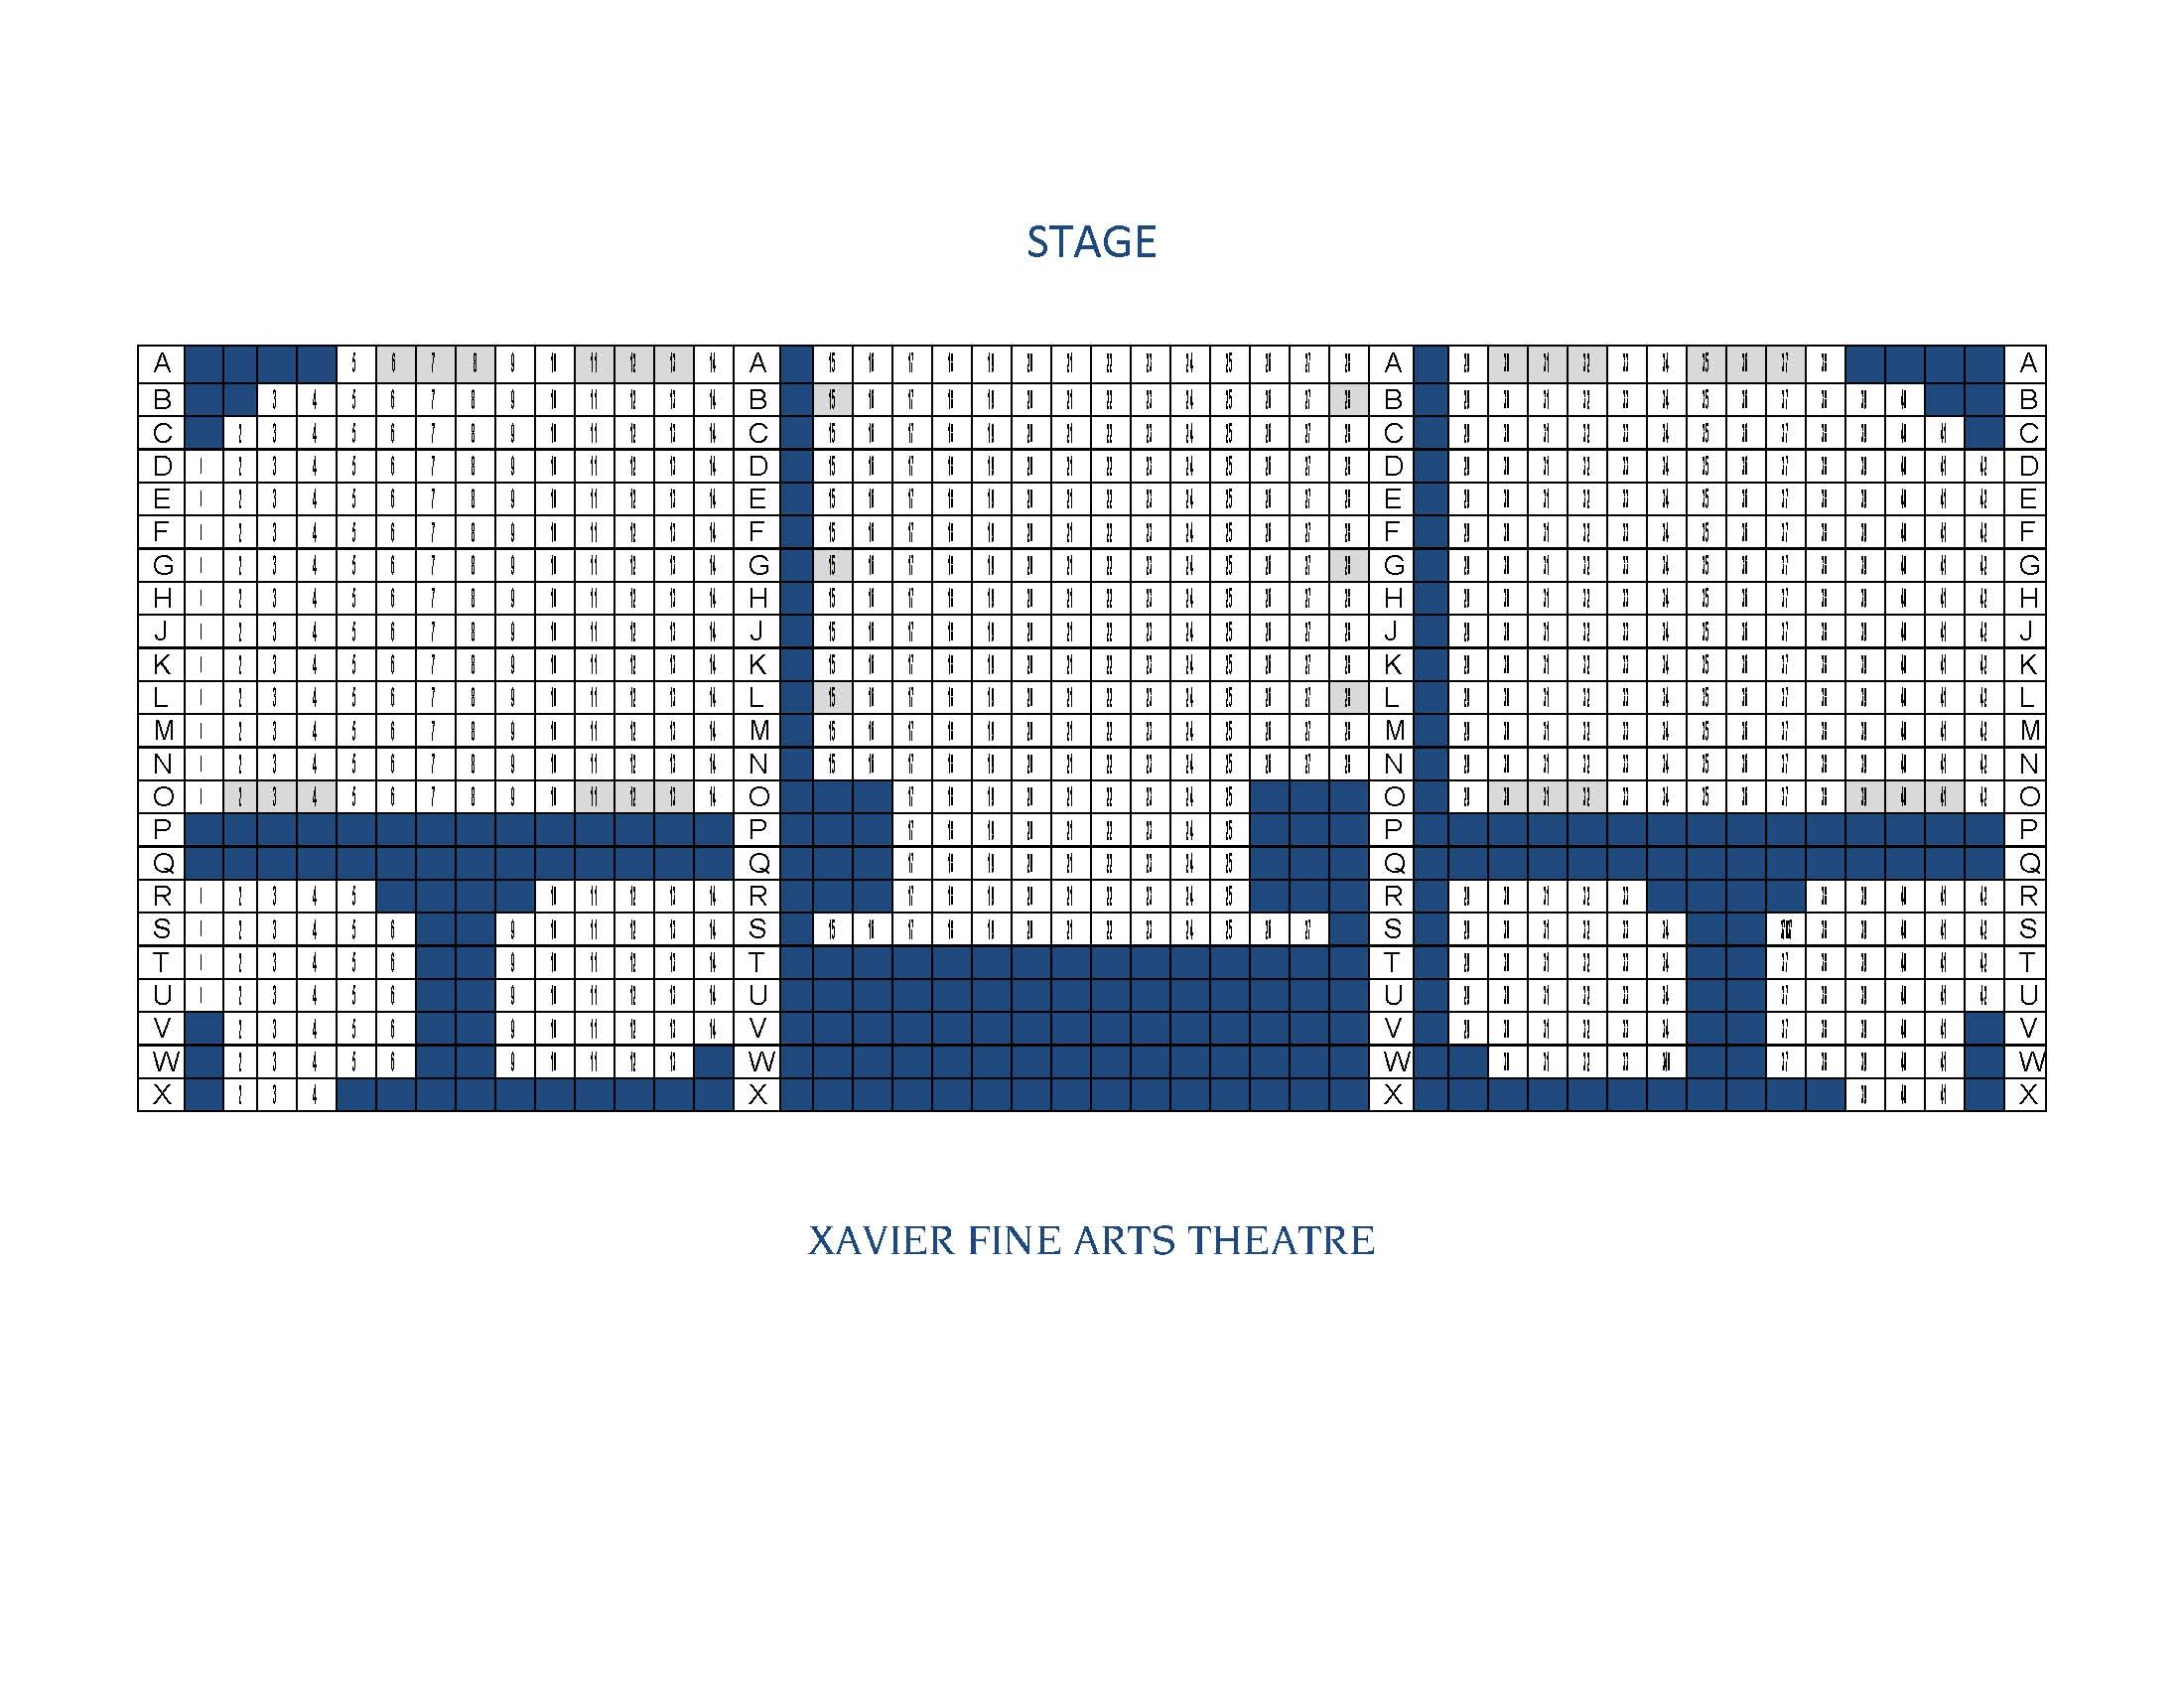 Xavier Fine Arts Theatre seating chart